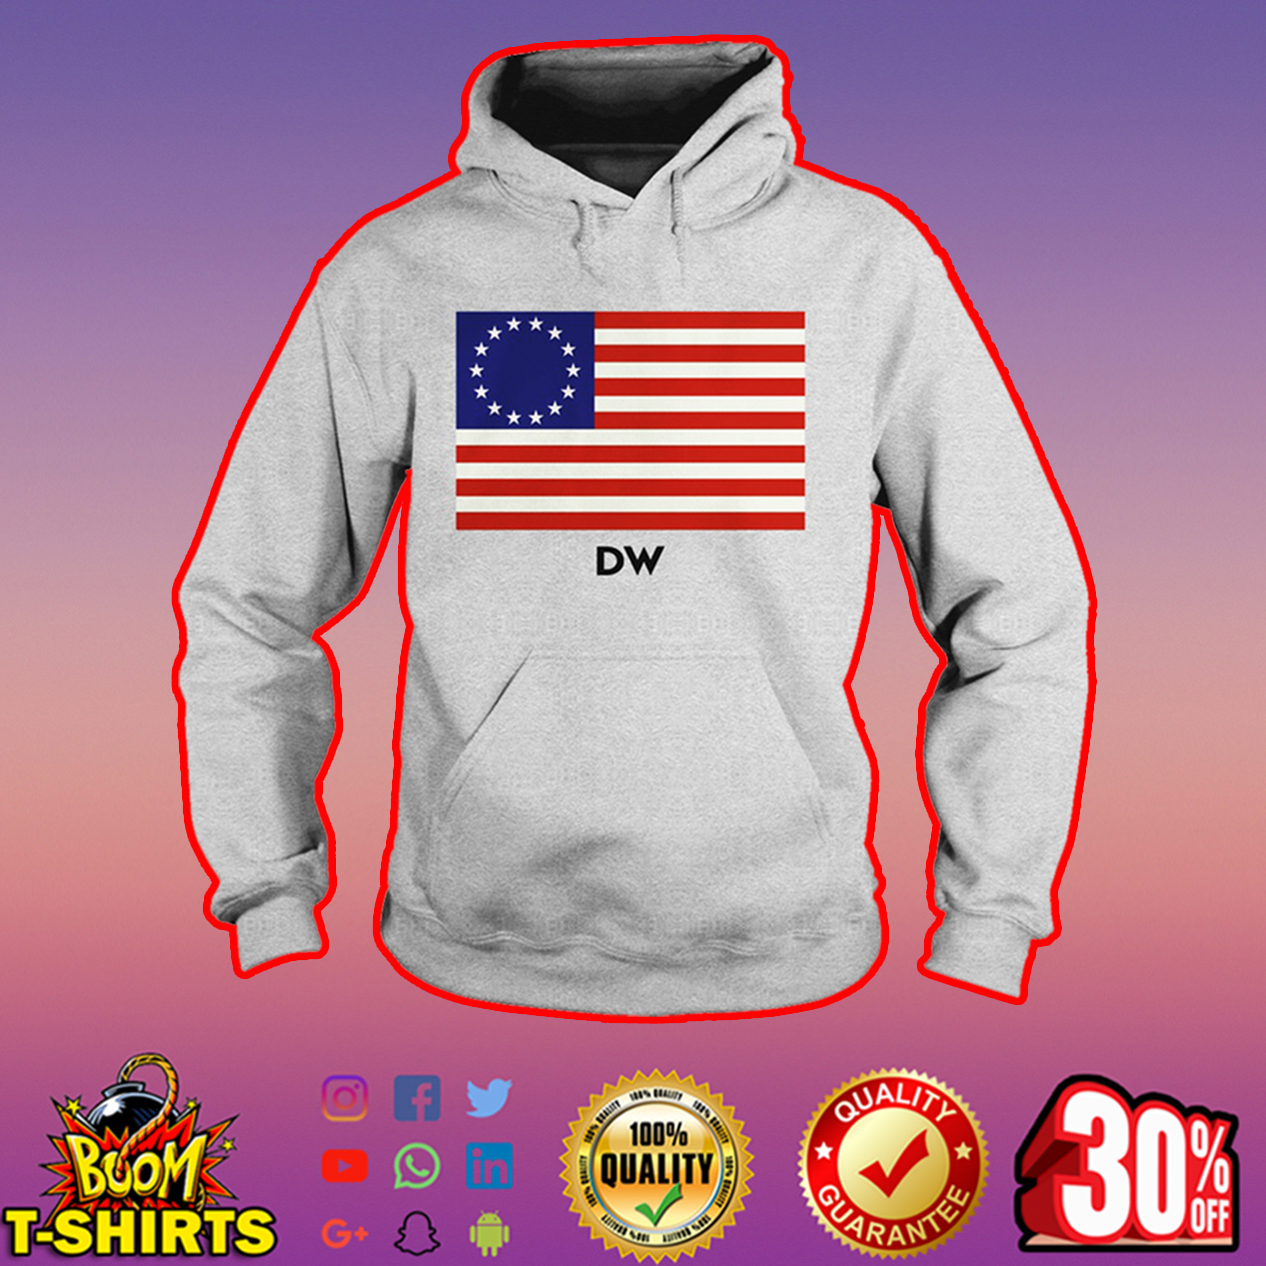 DW Betsy Ross flag hoodie